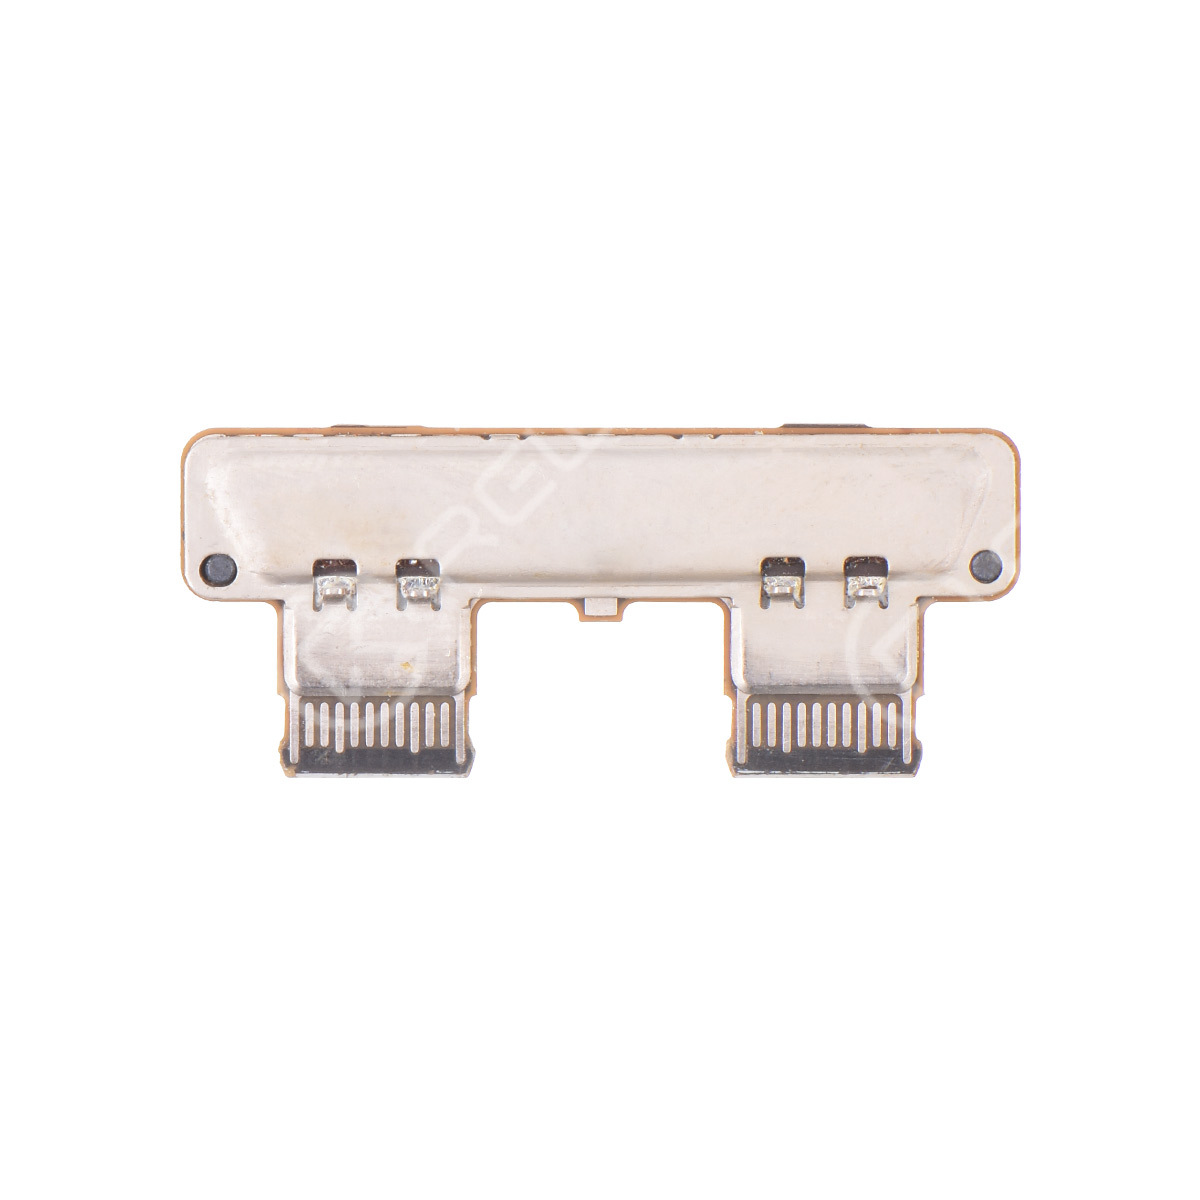 For MacBook Pro 13 Inch 1708 USB Connector